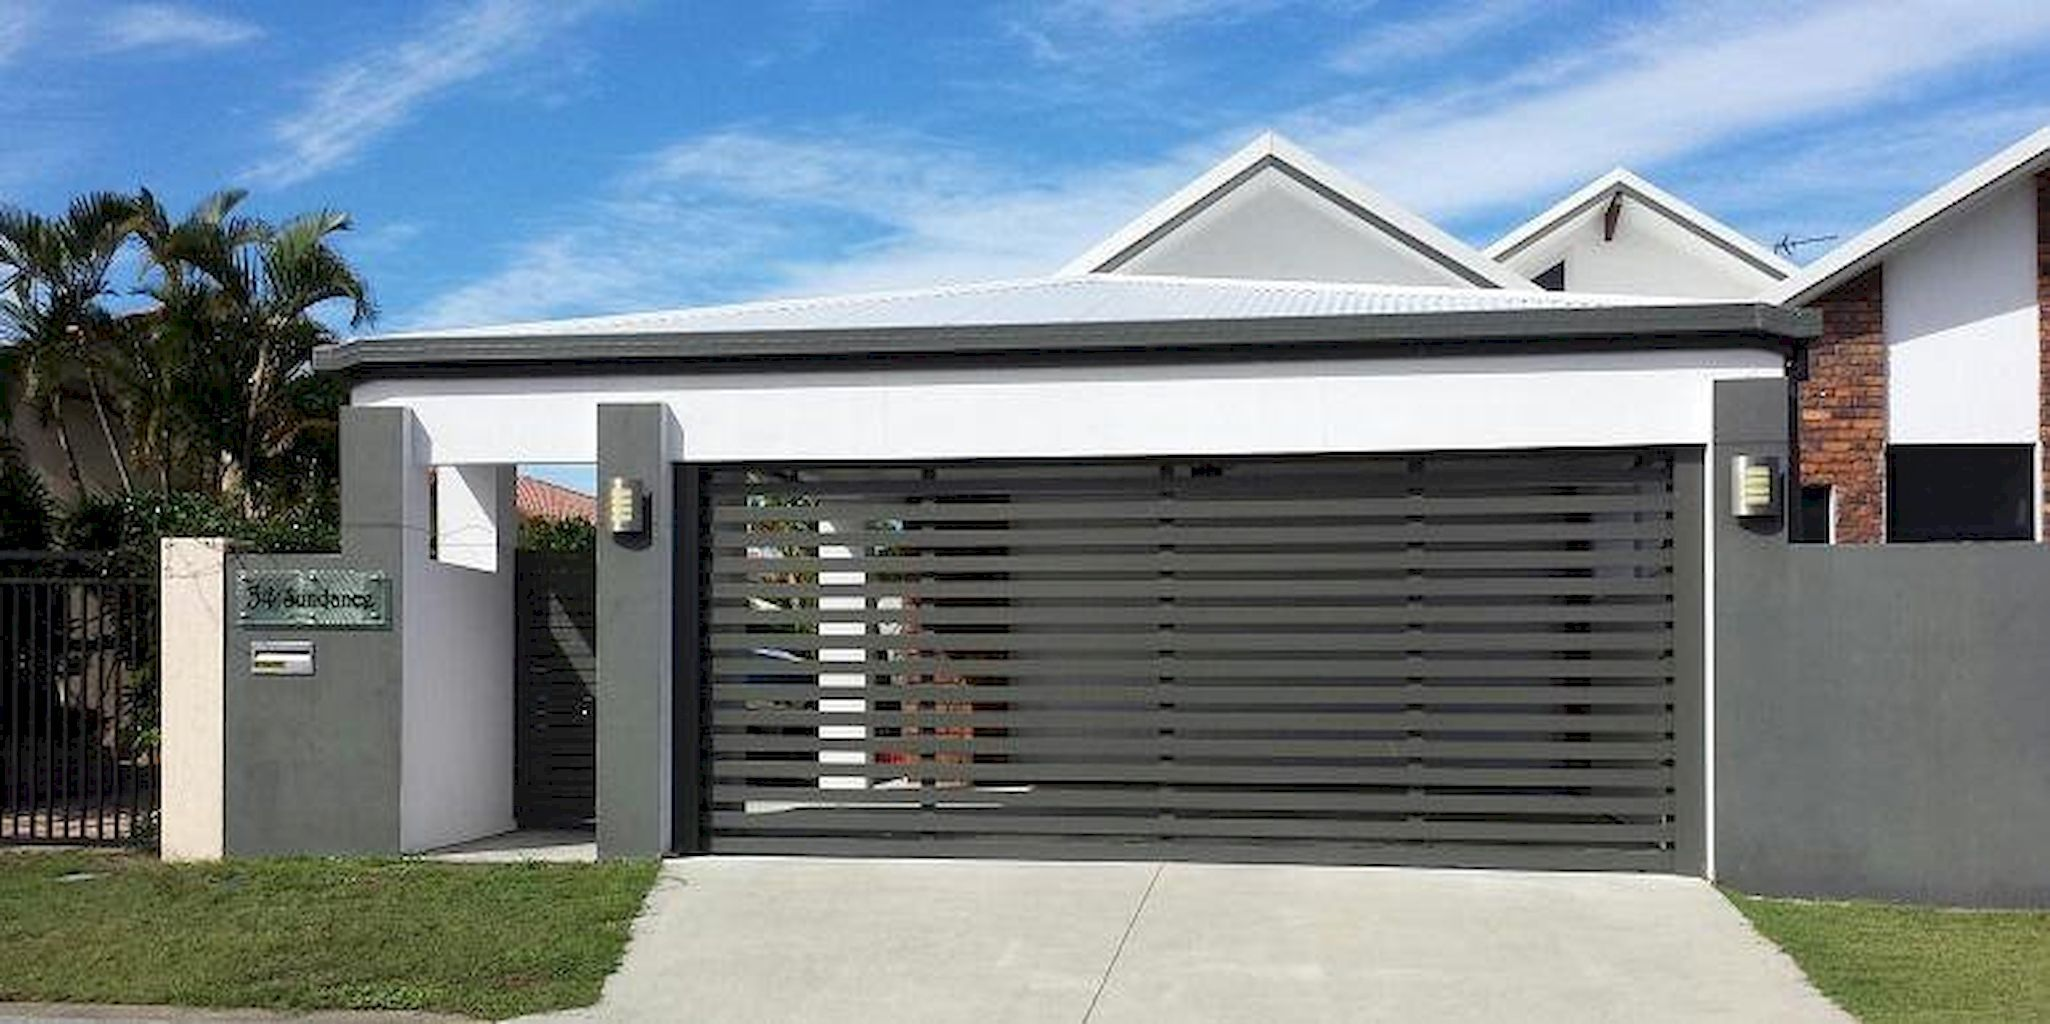 55 adorable modern carports garage designs ideas modern ForModern Carport Designs Plans